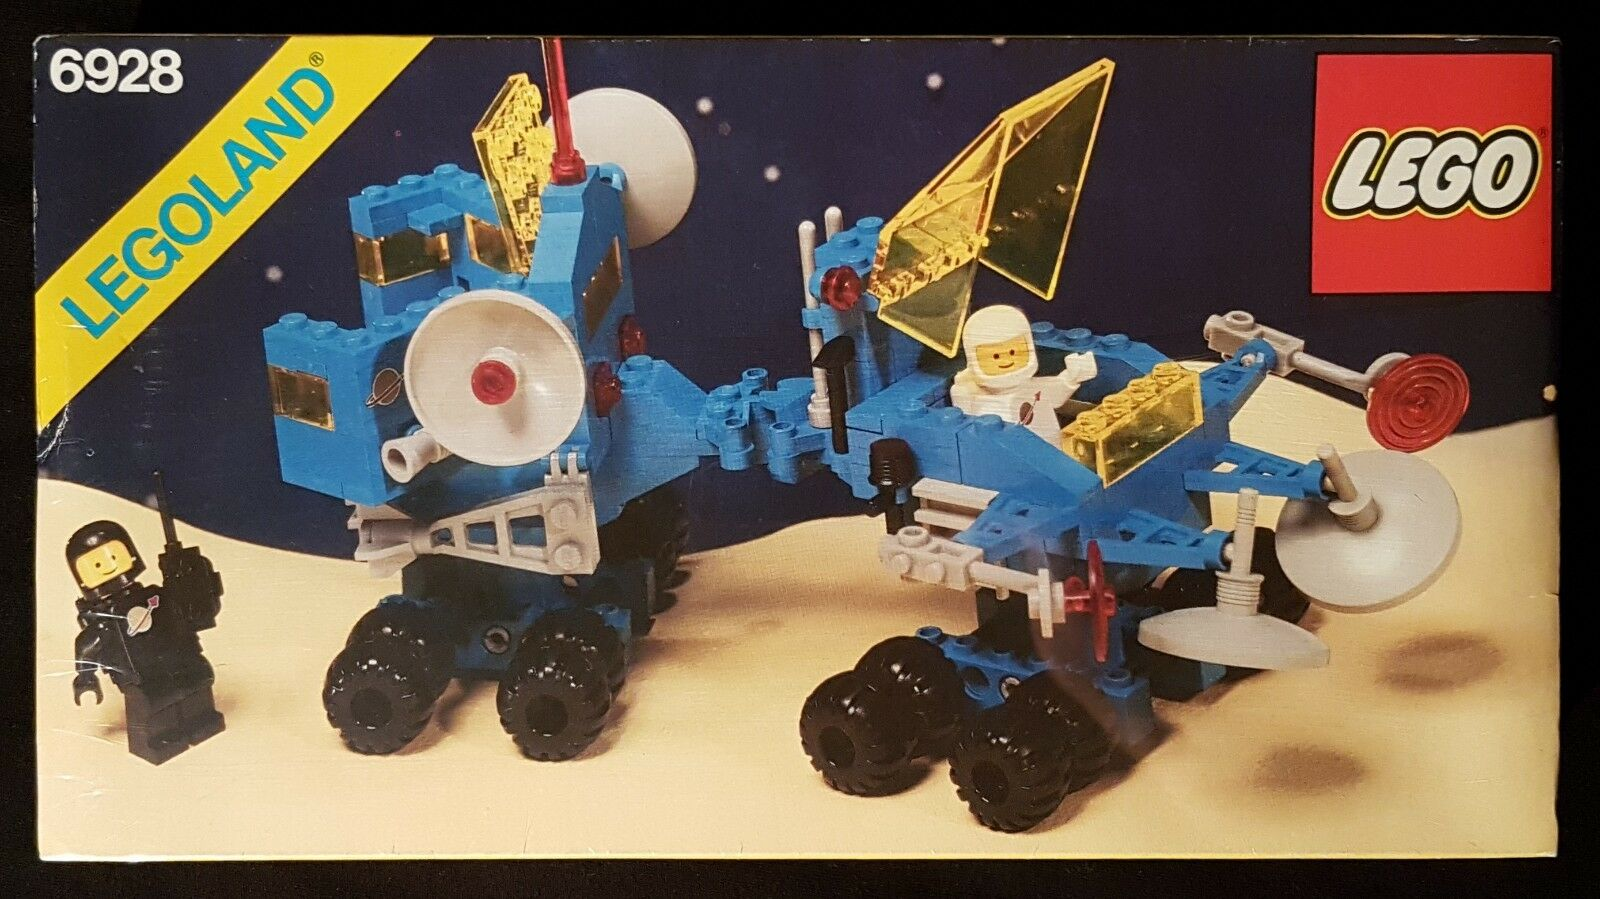 Lego 6928 - Uranium Search Vehicle - 1984 Legoland Classic Space - Vintage, MISB